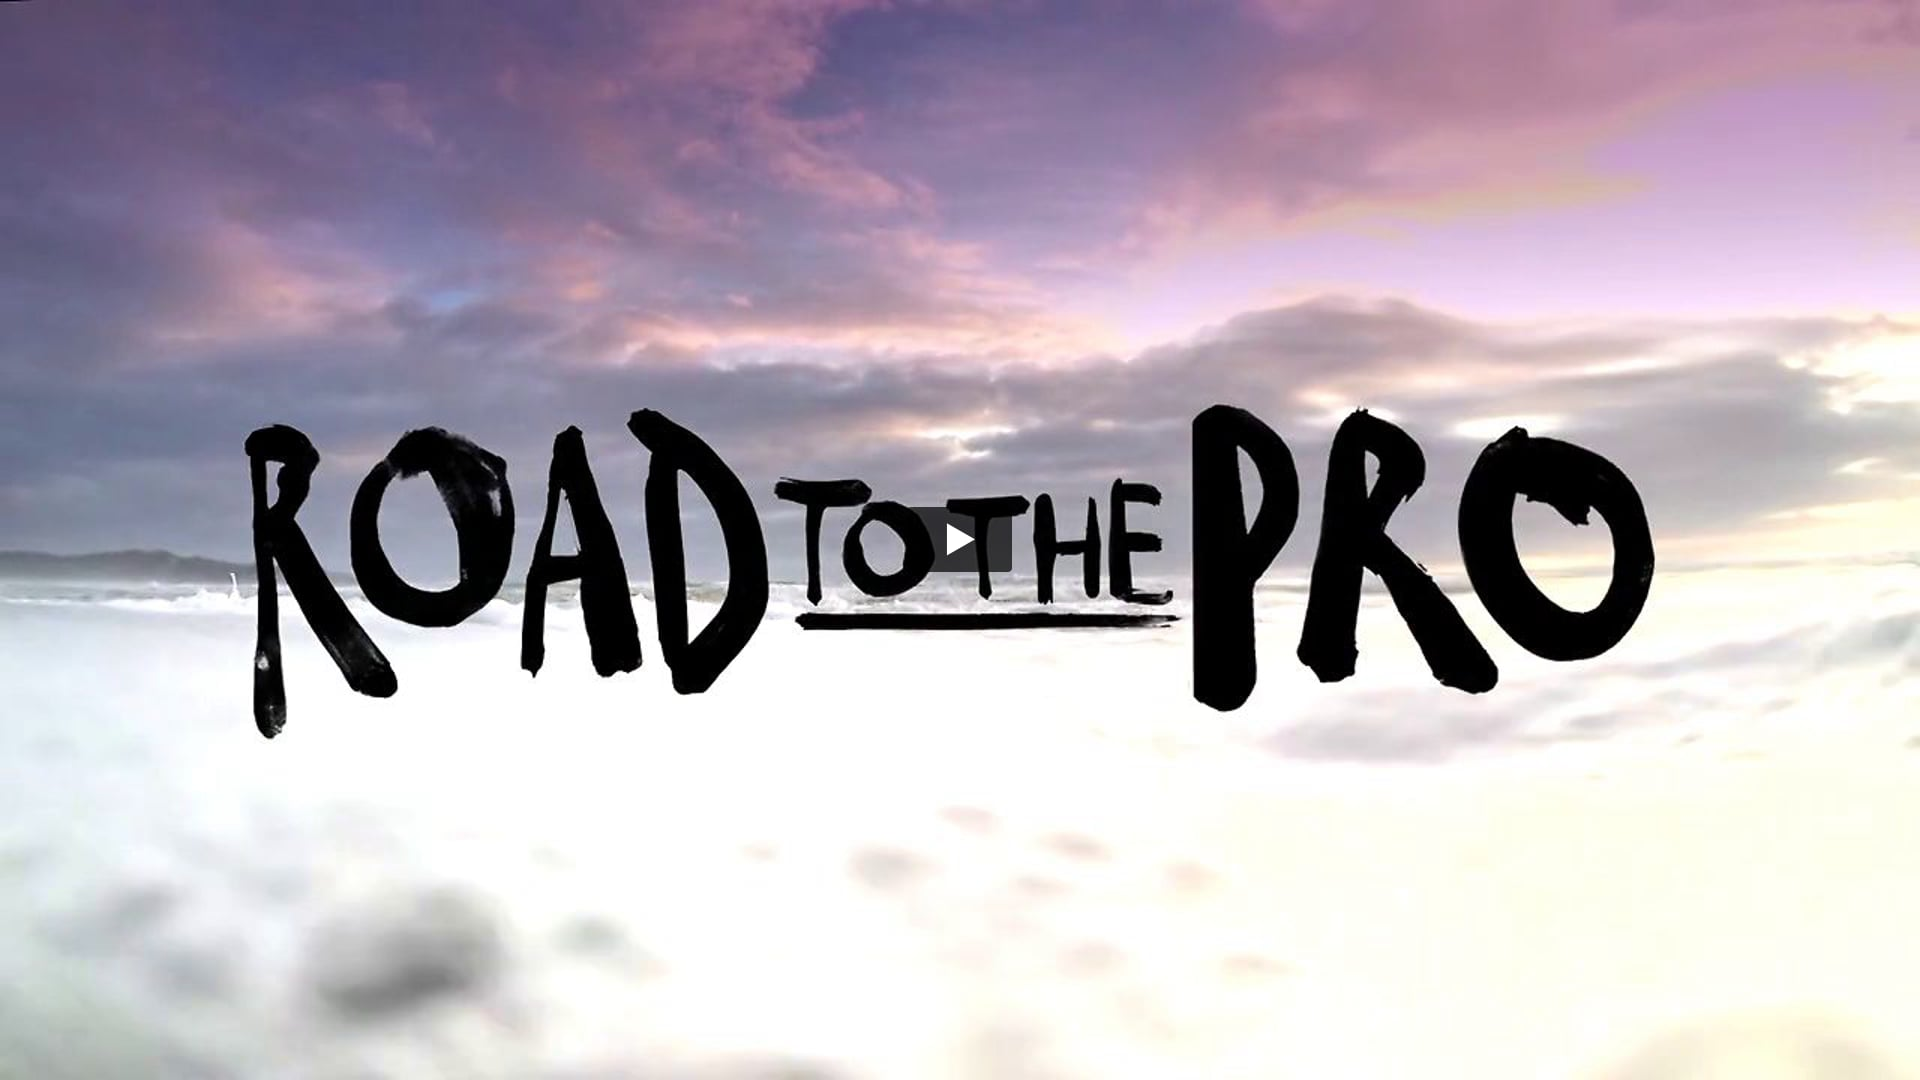 ROAD TO THE PRO